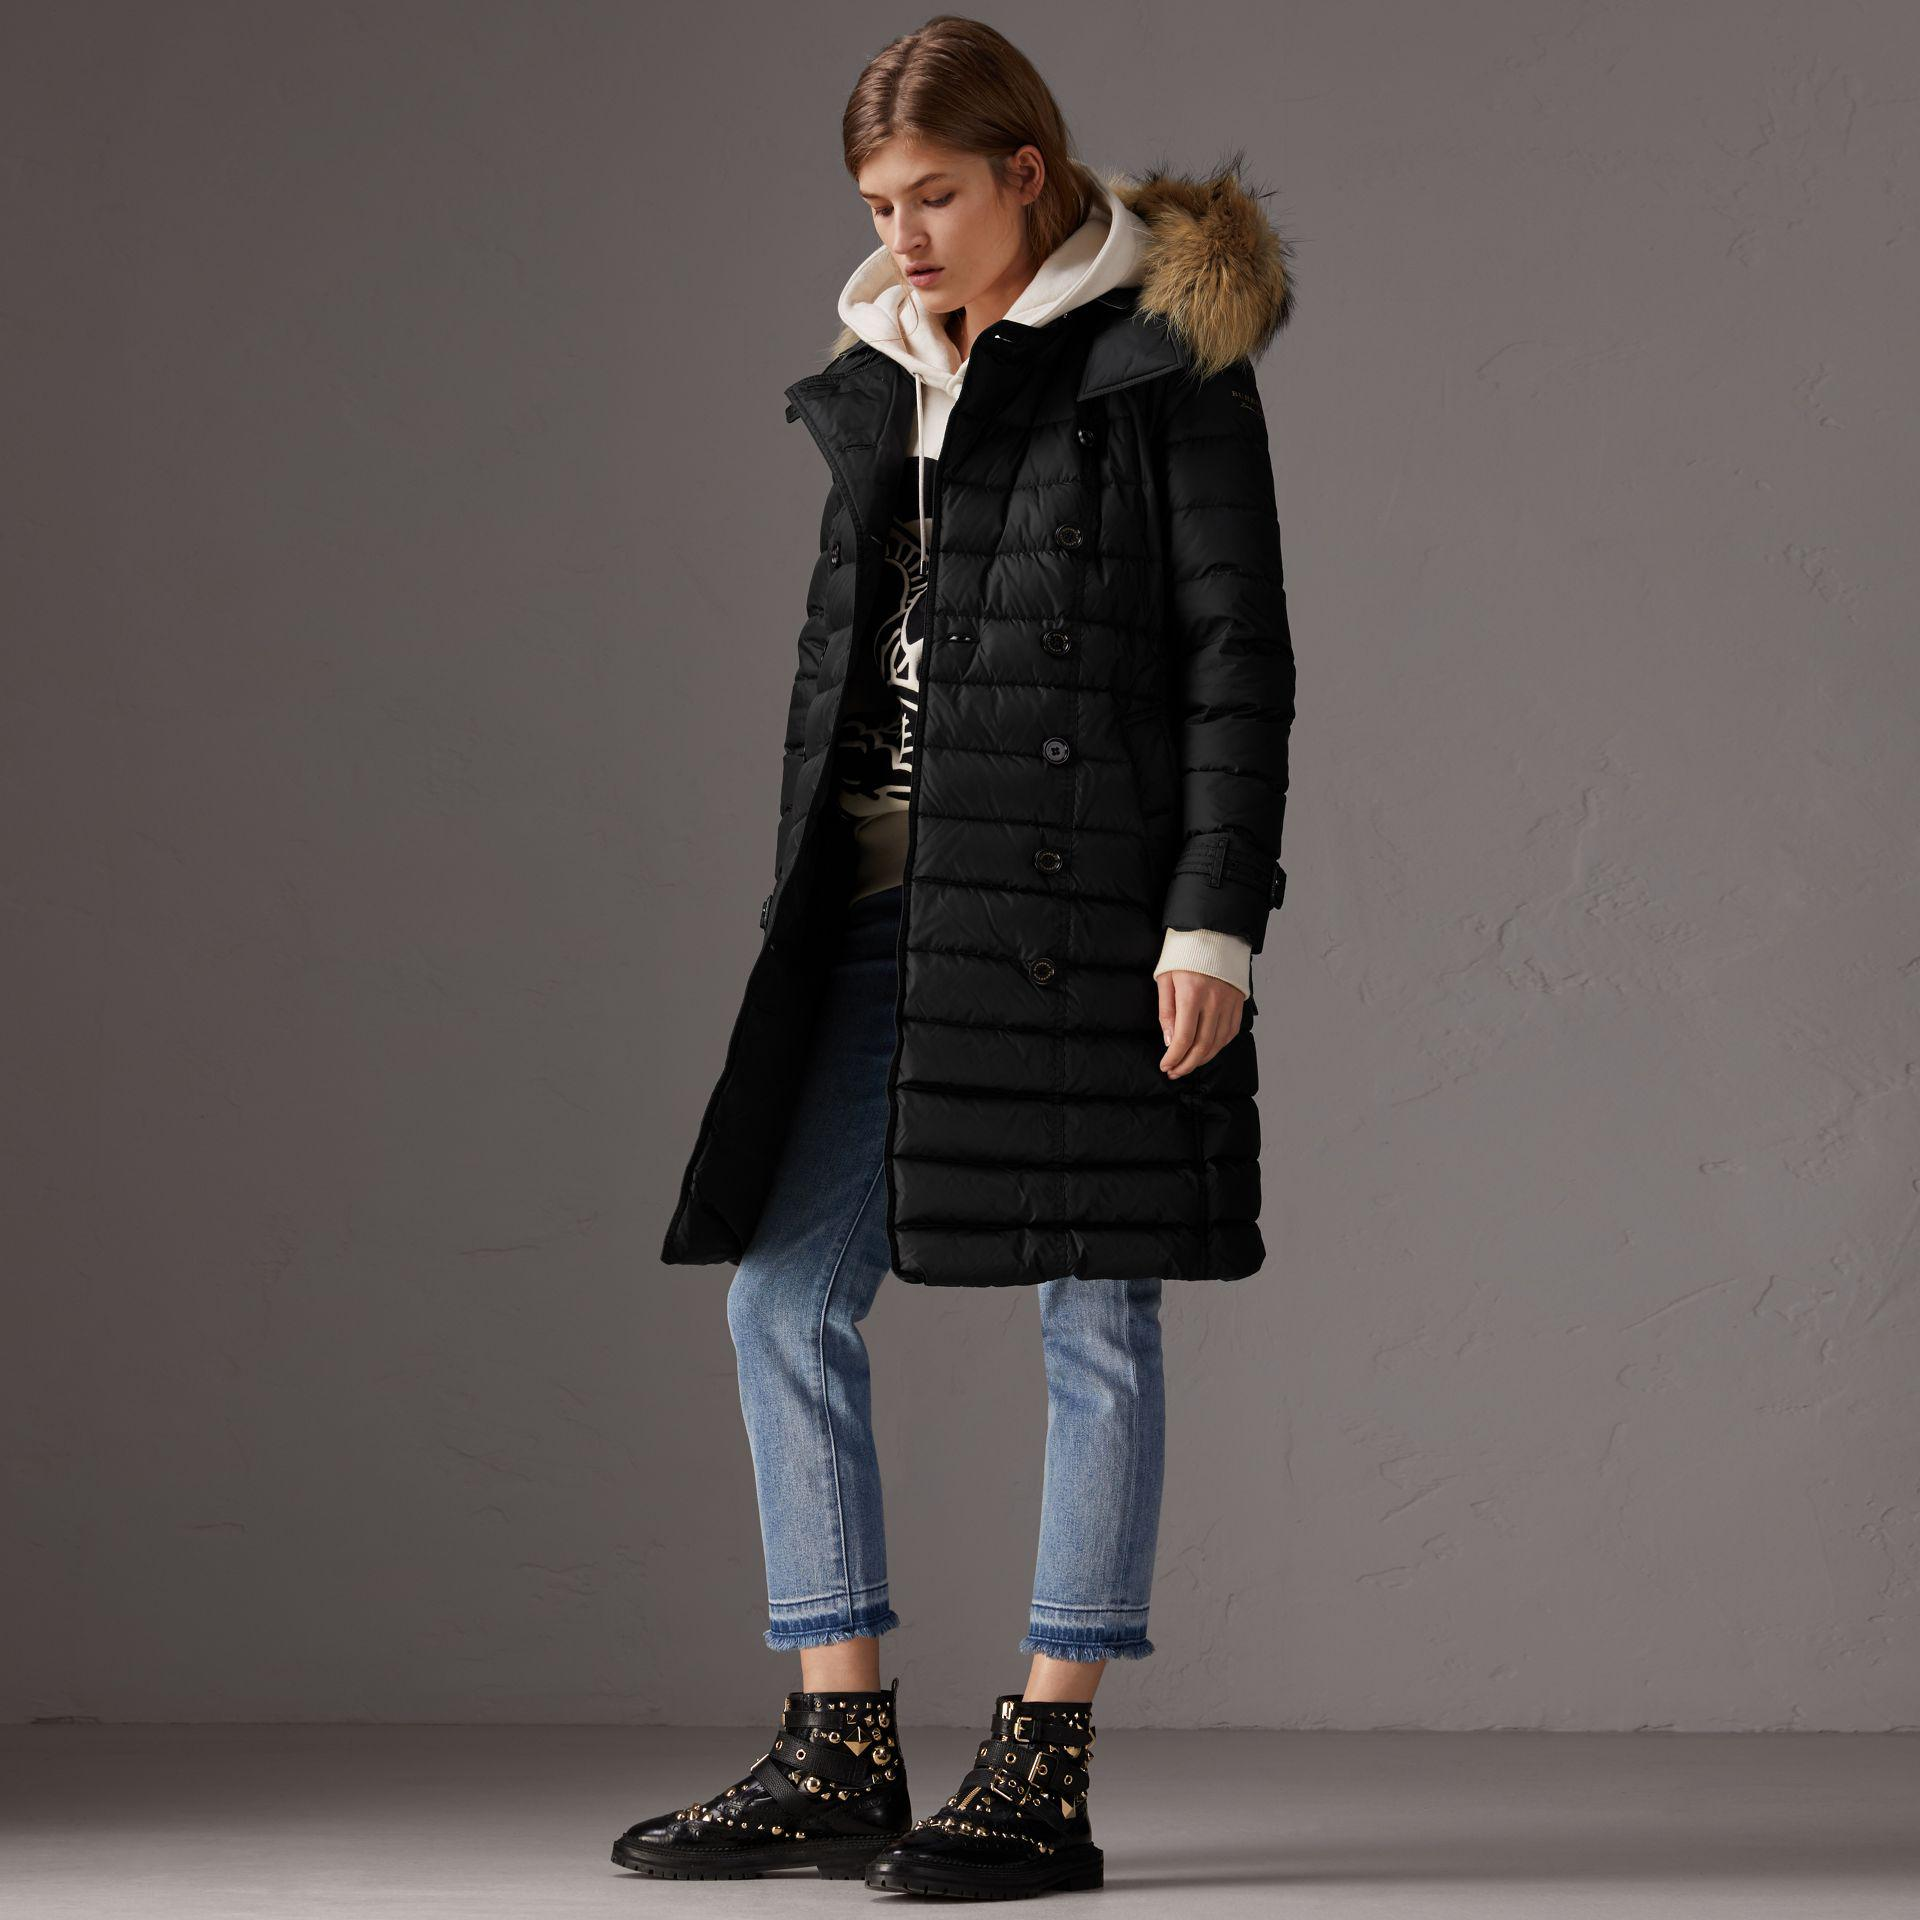 5098a42d95e623 Burberry Detachable Hood Fur Trim Down-filled Puffer Coat in Black ...